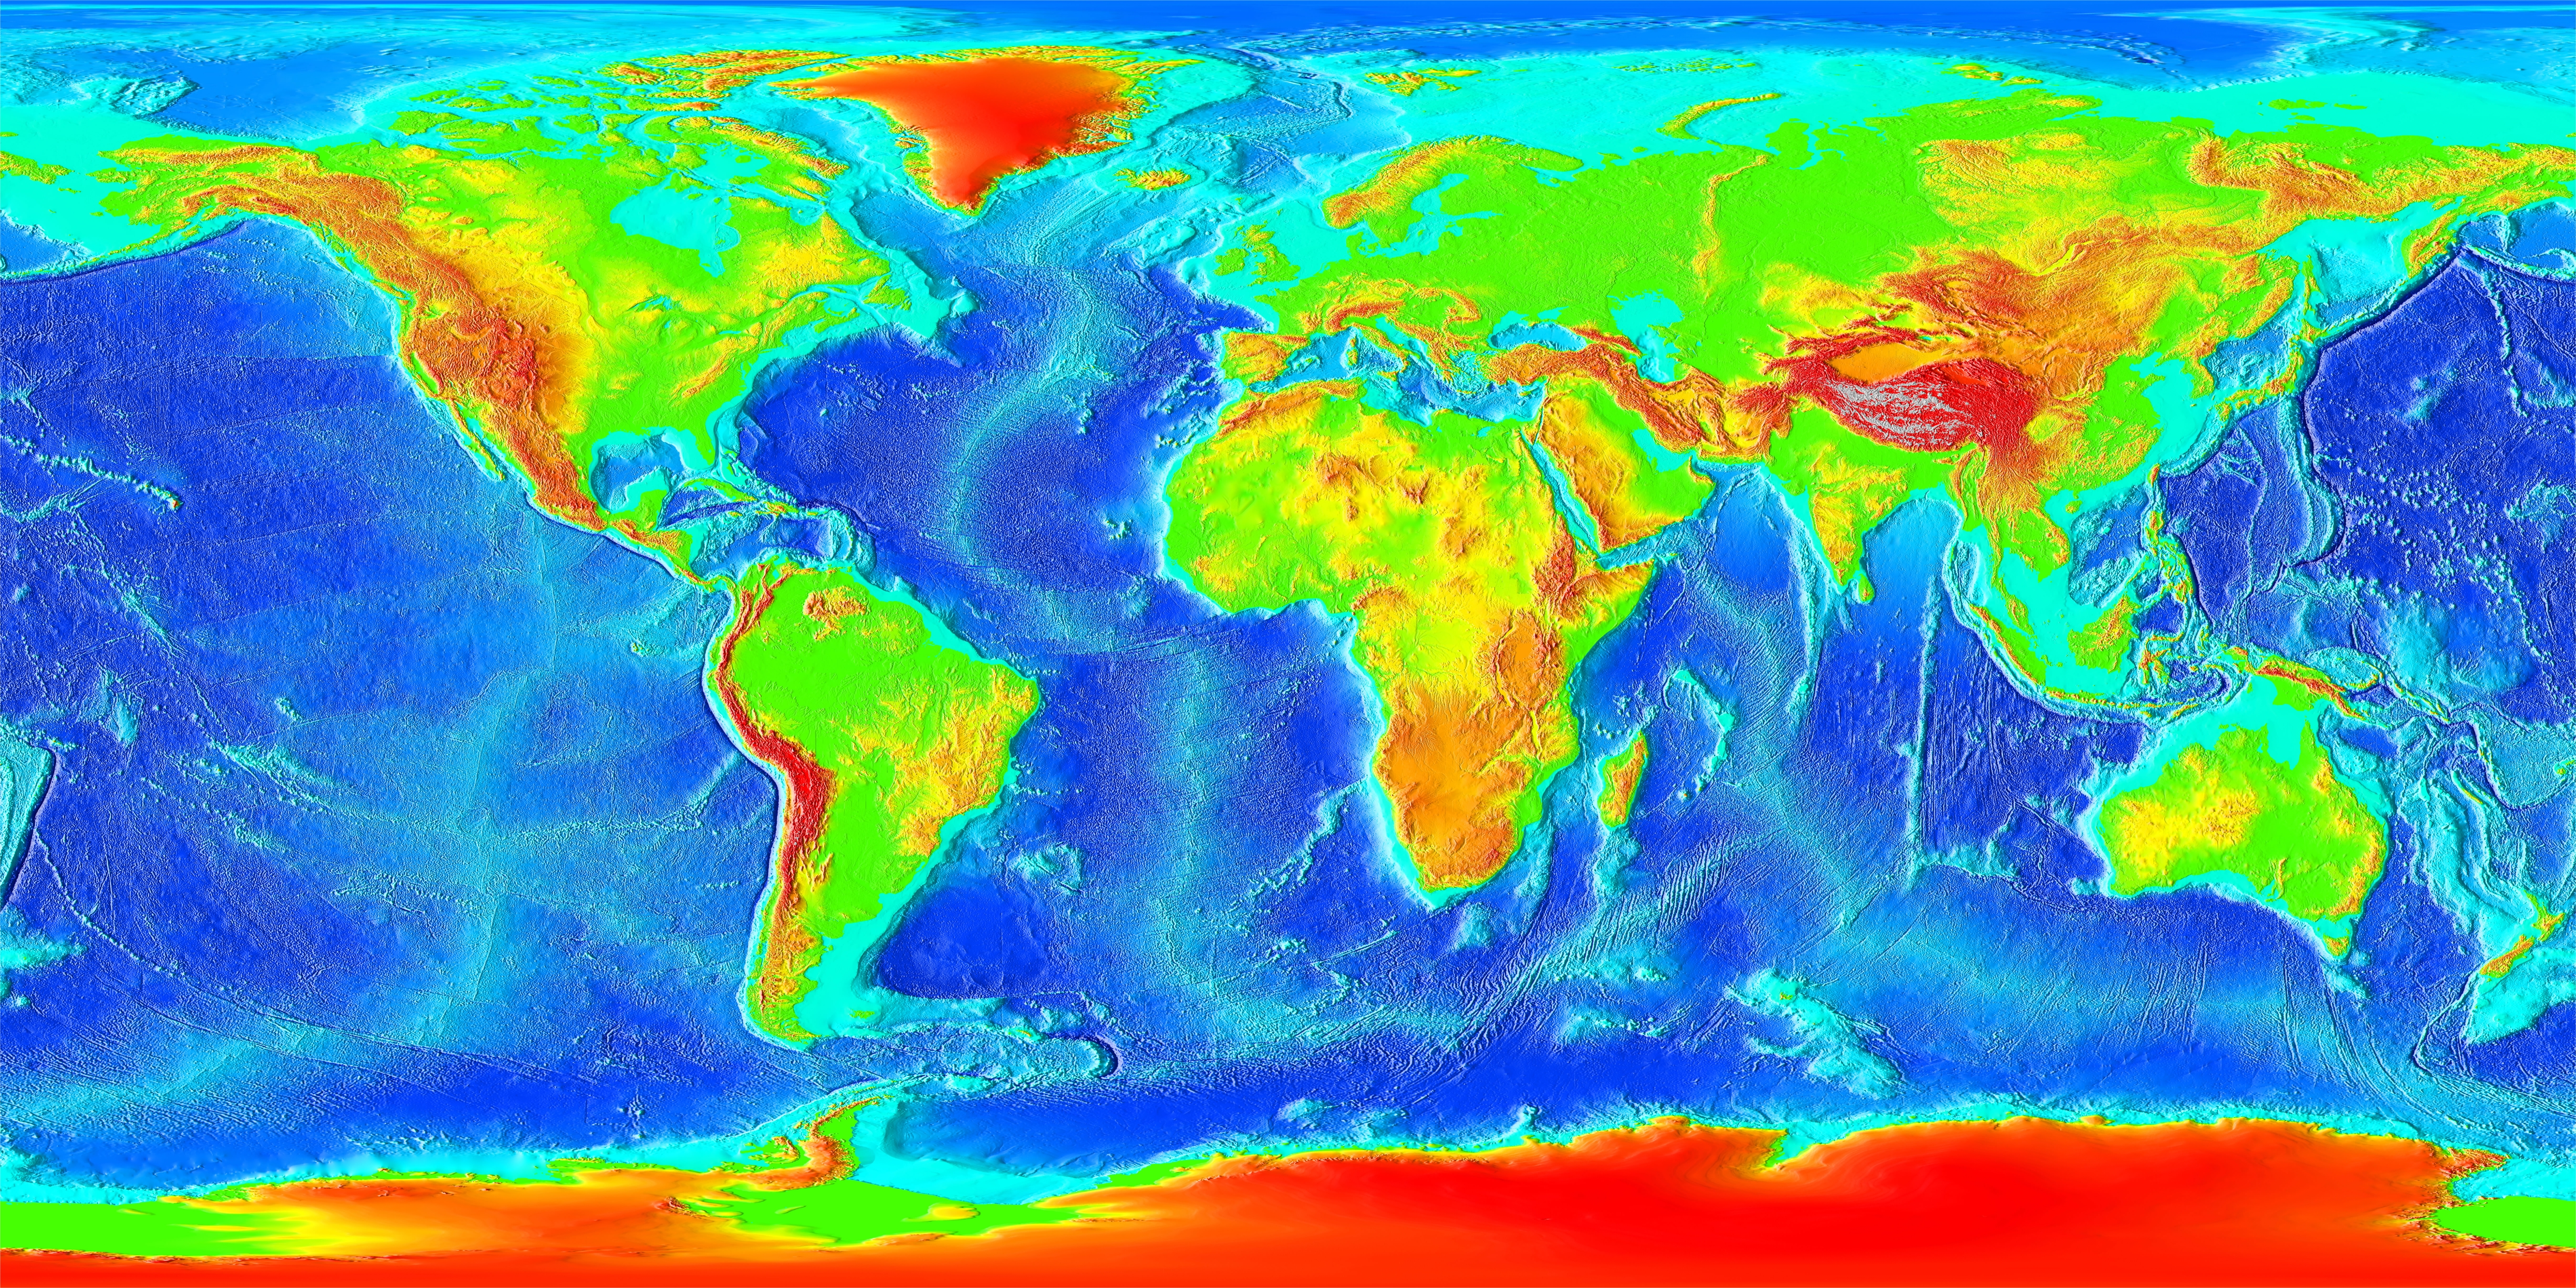 Ocean Floor Elevation Map : Tectonic geomorphology